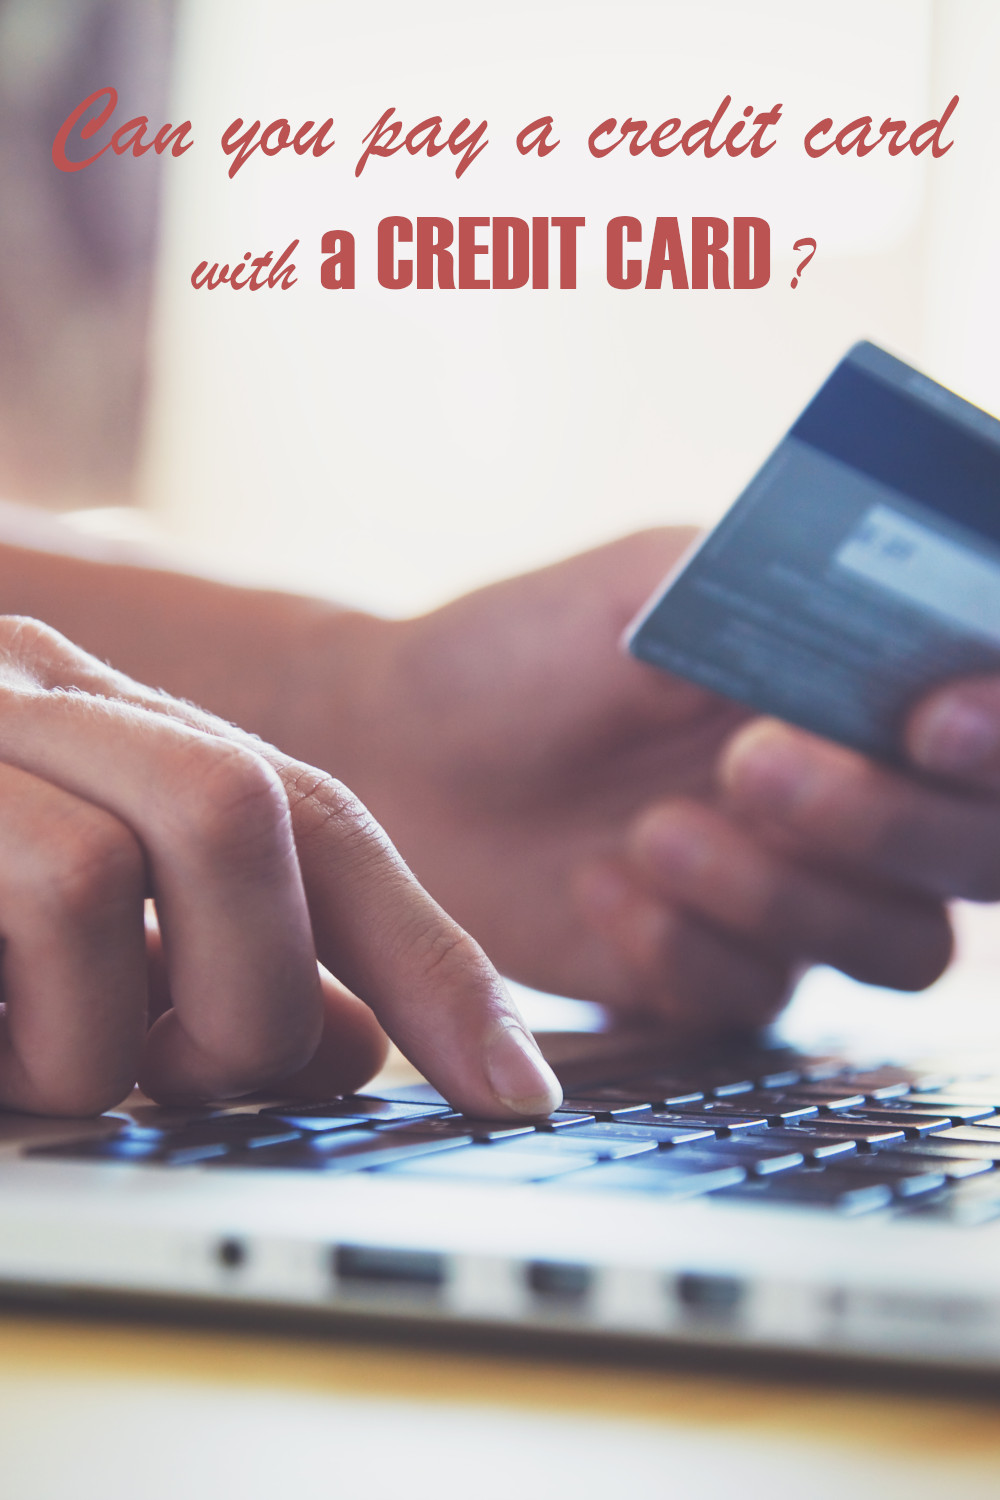 Can you pay a credit card with another credit card?